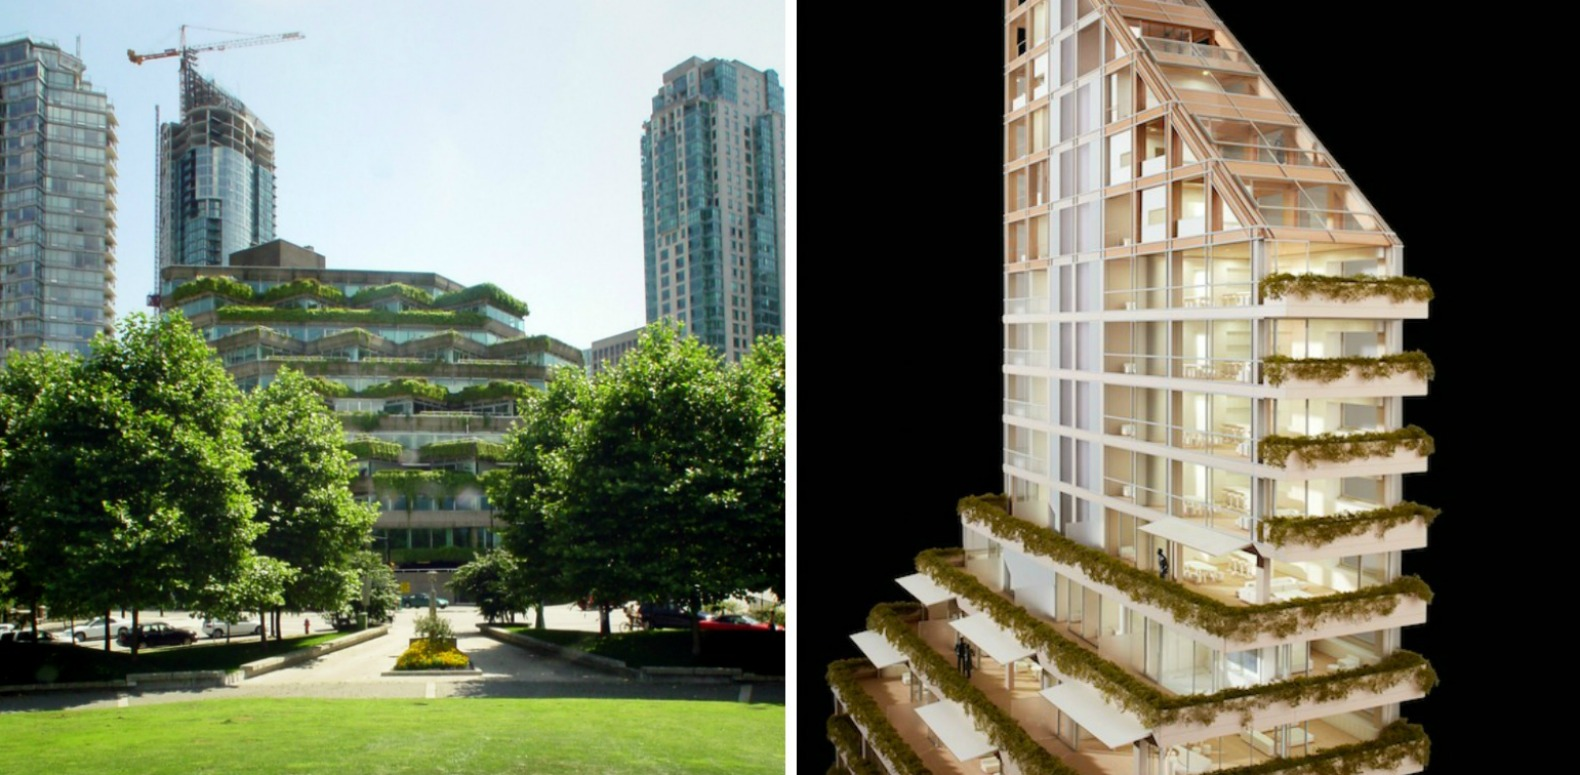 Shigeru ban architects unveil plans for the world s for Terrace building